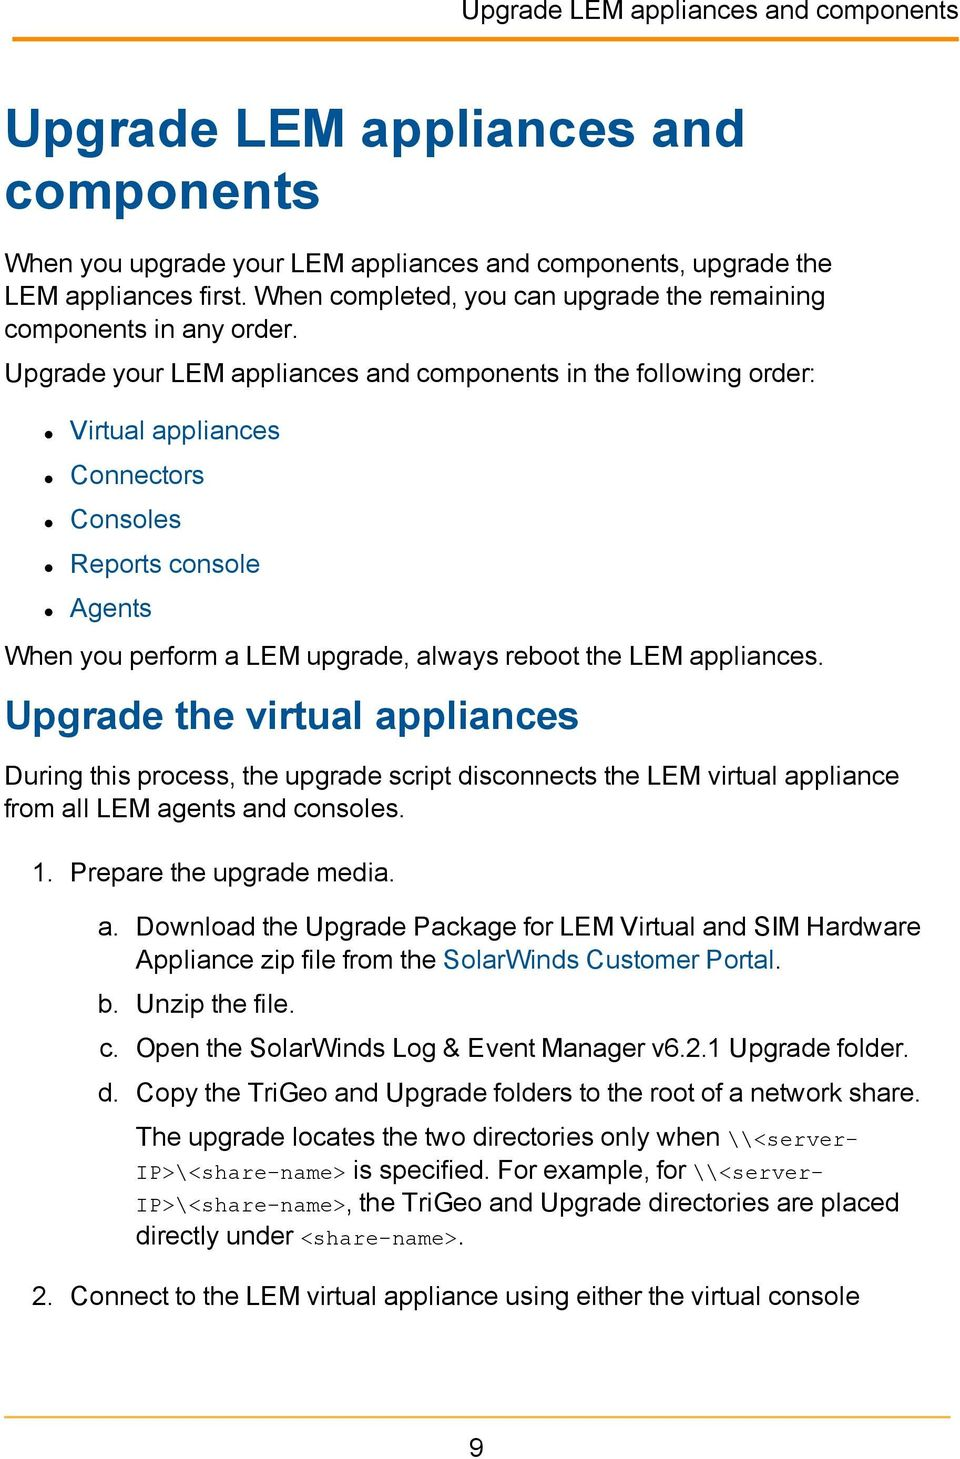 Upgrade your LEM appliances and components in the following order: Virtual appliances Connectors Consoles Reports console Agents When you perform a LEM upgrade, always reboot the LEM appliances.